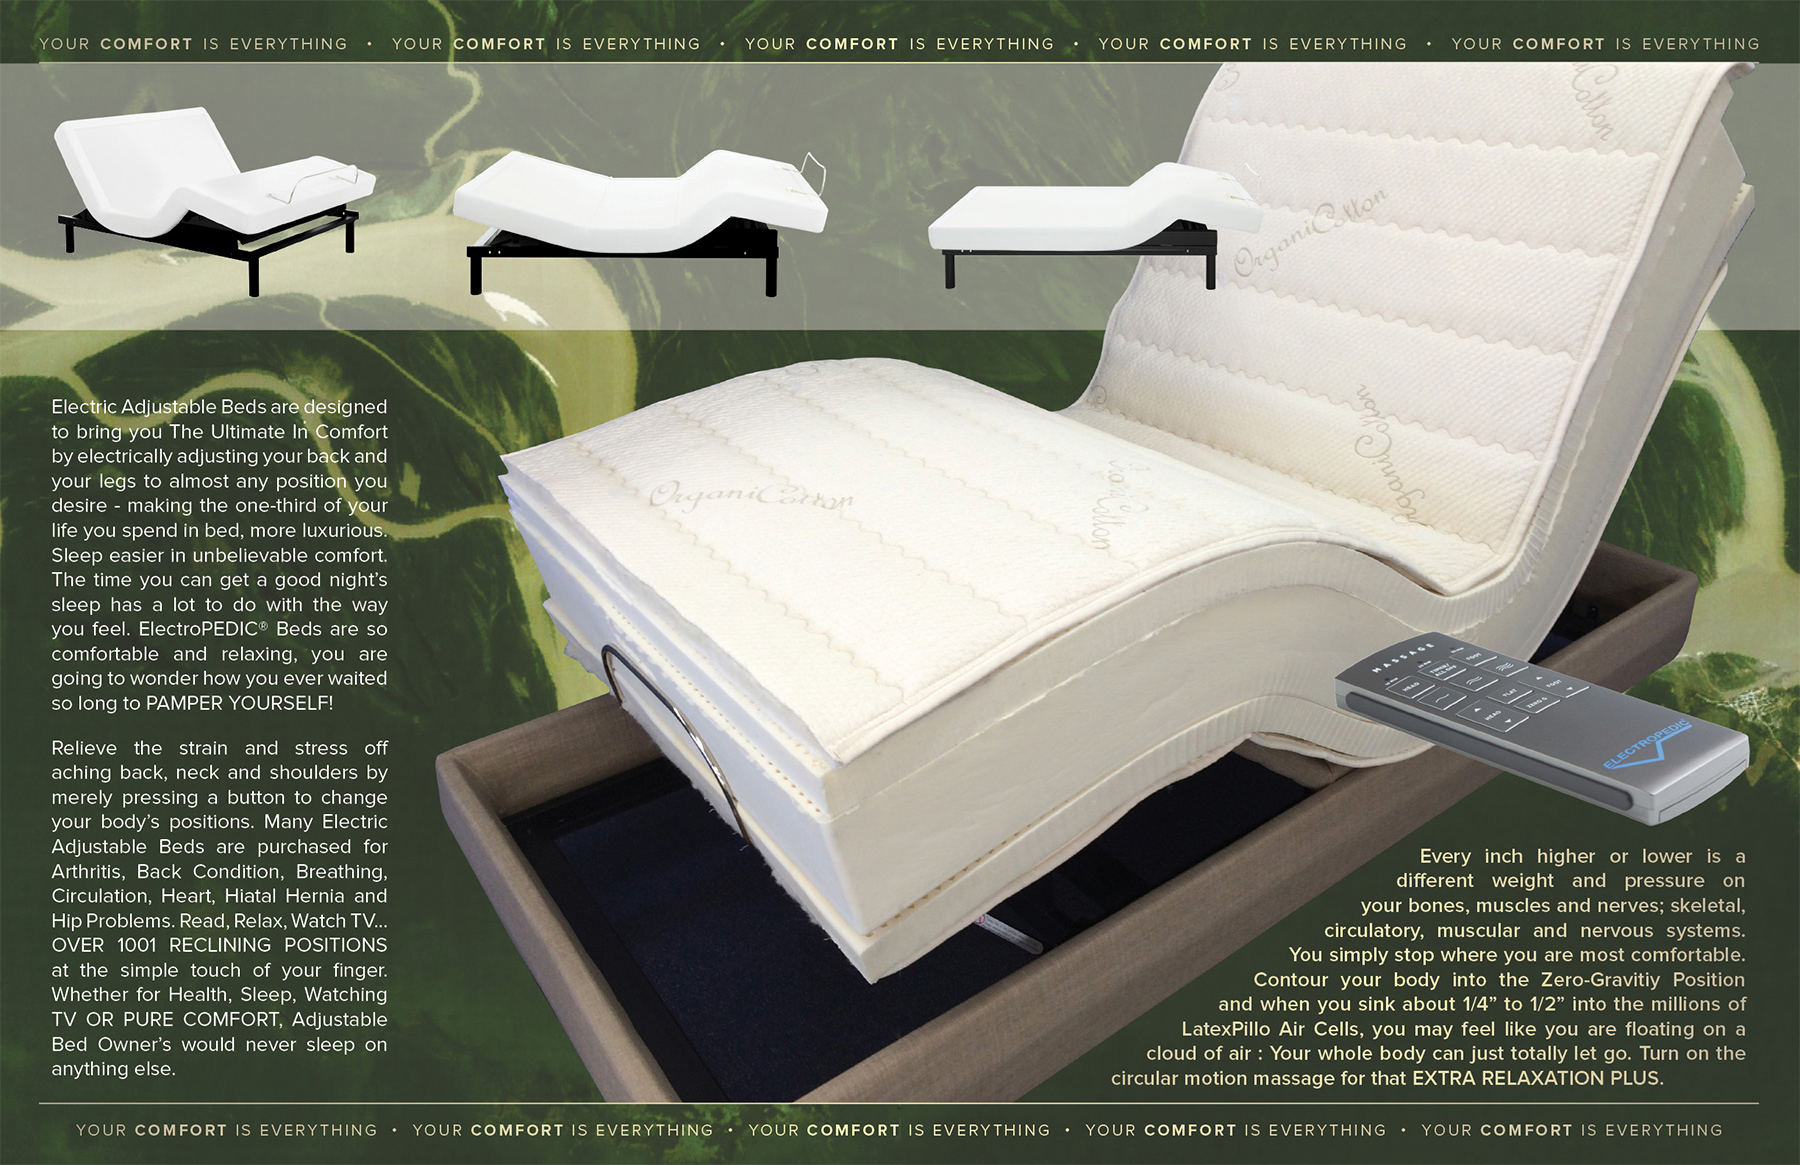 LA organic natural adjustable beds